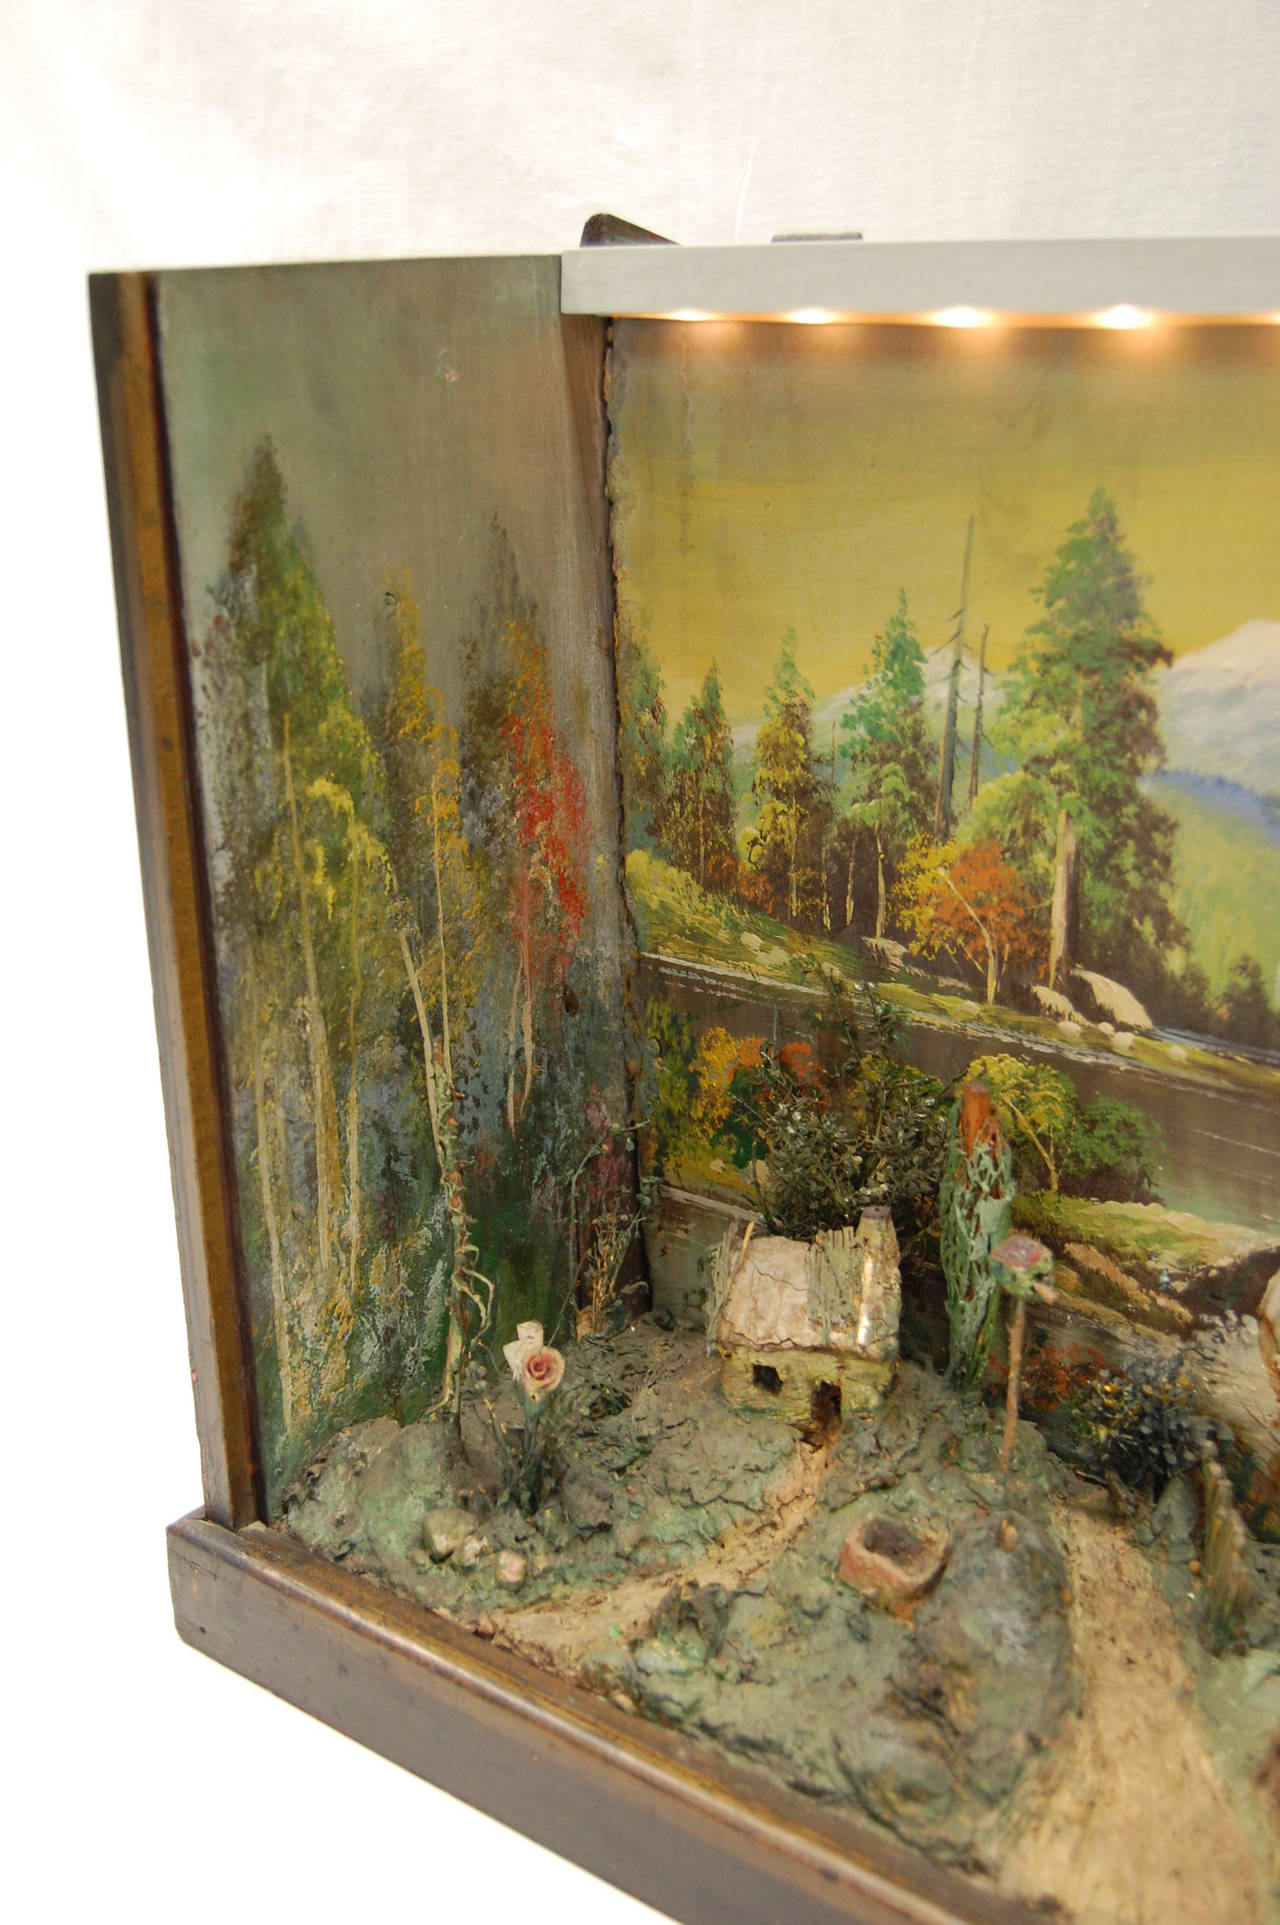 Antique Diorama Of American Farm Scene With Cow Farmhouse And Trees For Sale At 1stdibs